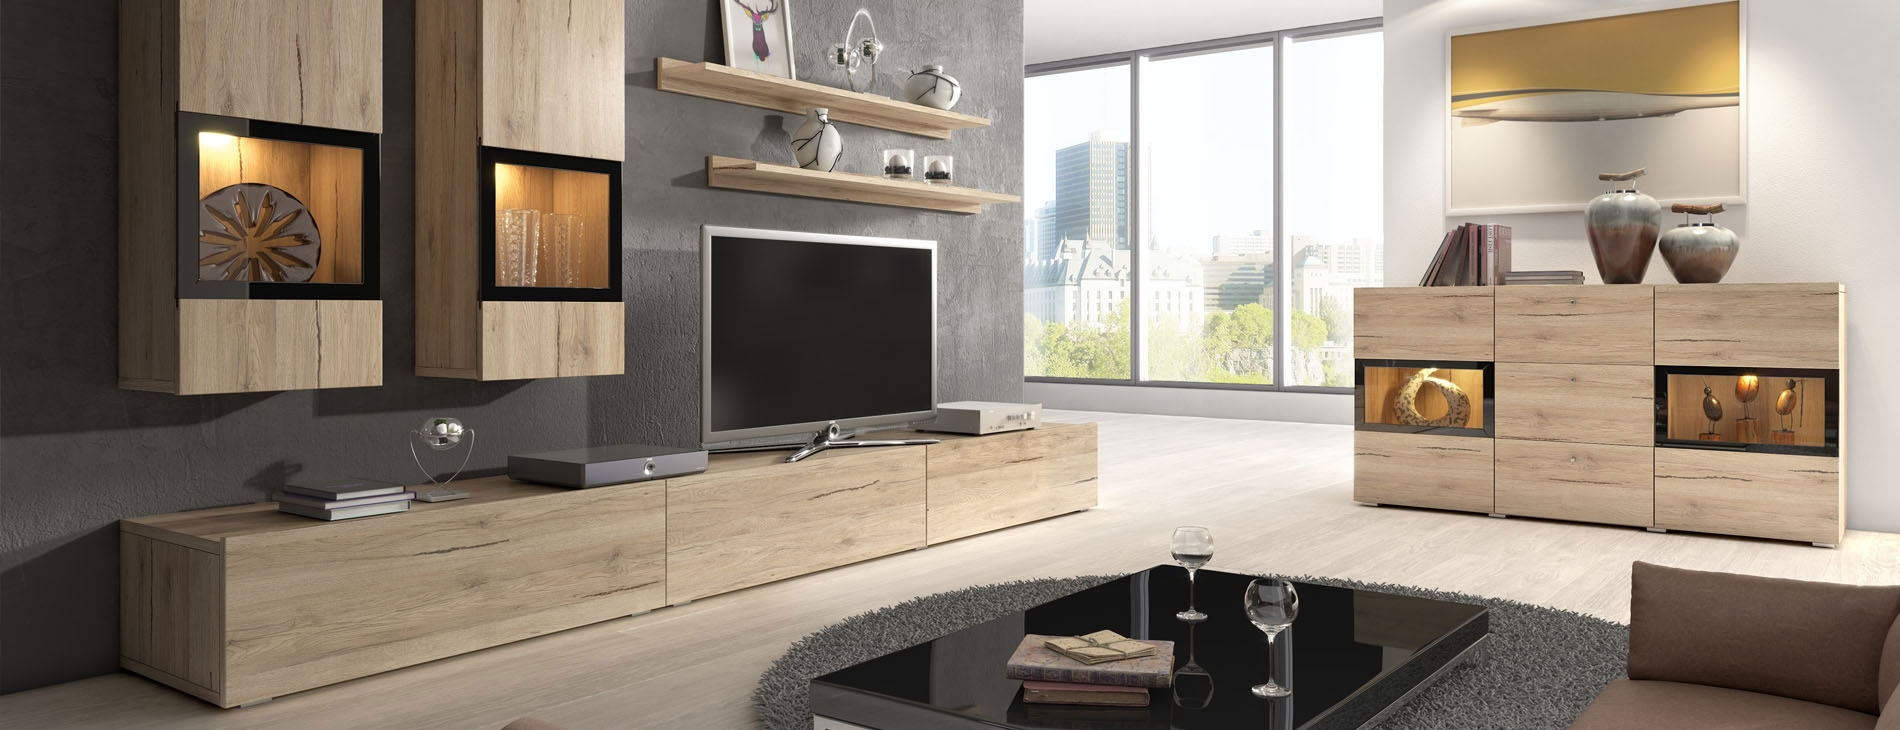 https://domadeco.nl/wall-unit-baros-3.html